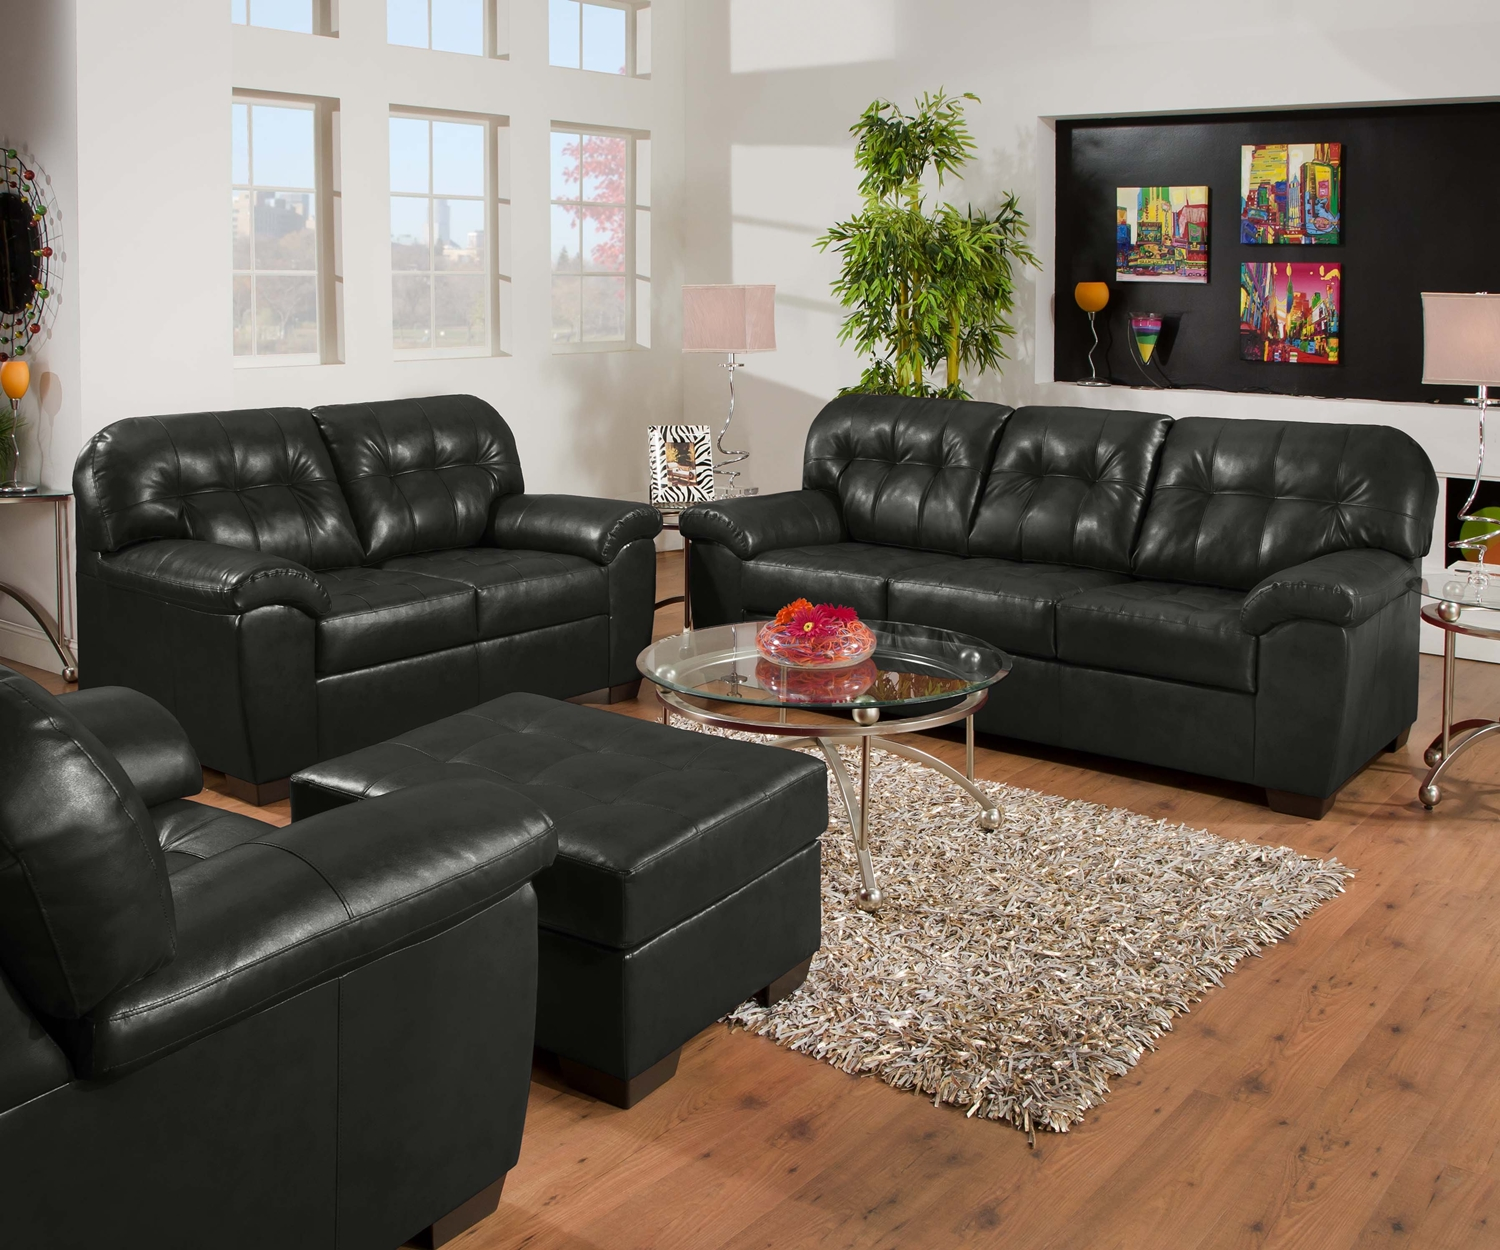 soho onyx black contemporary tufted bonded leather living room set simmons. Black Bedroom Furniture Sets. Home Design Ideas